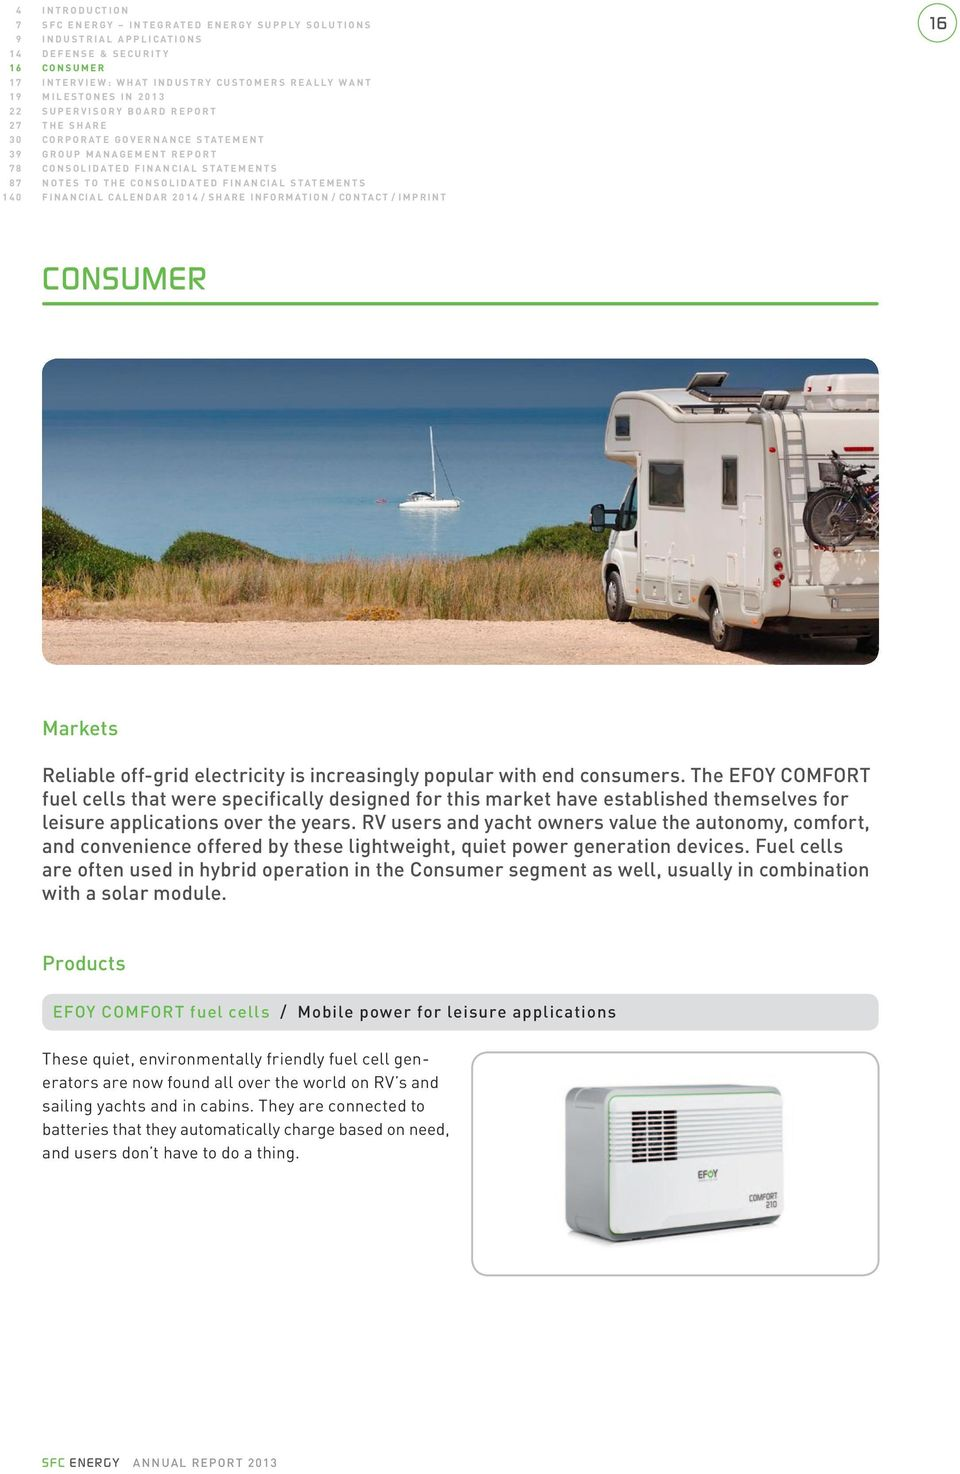 RV users and yacht owners value the autonomy, comfort, and convenience offered by these lightweight, quiet power generation devices.